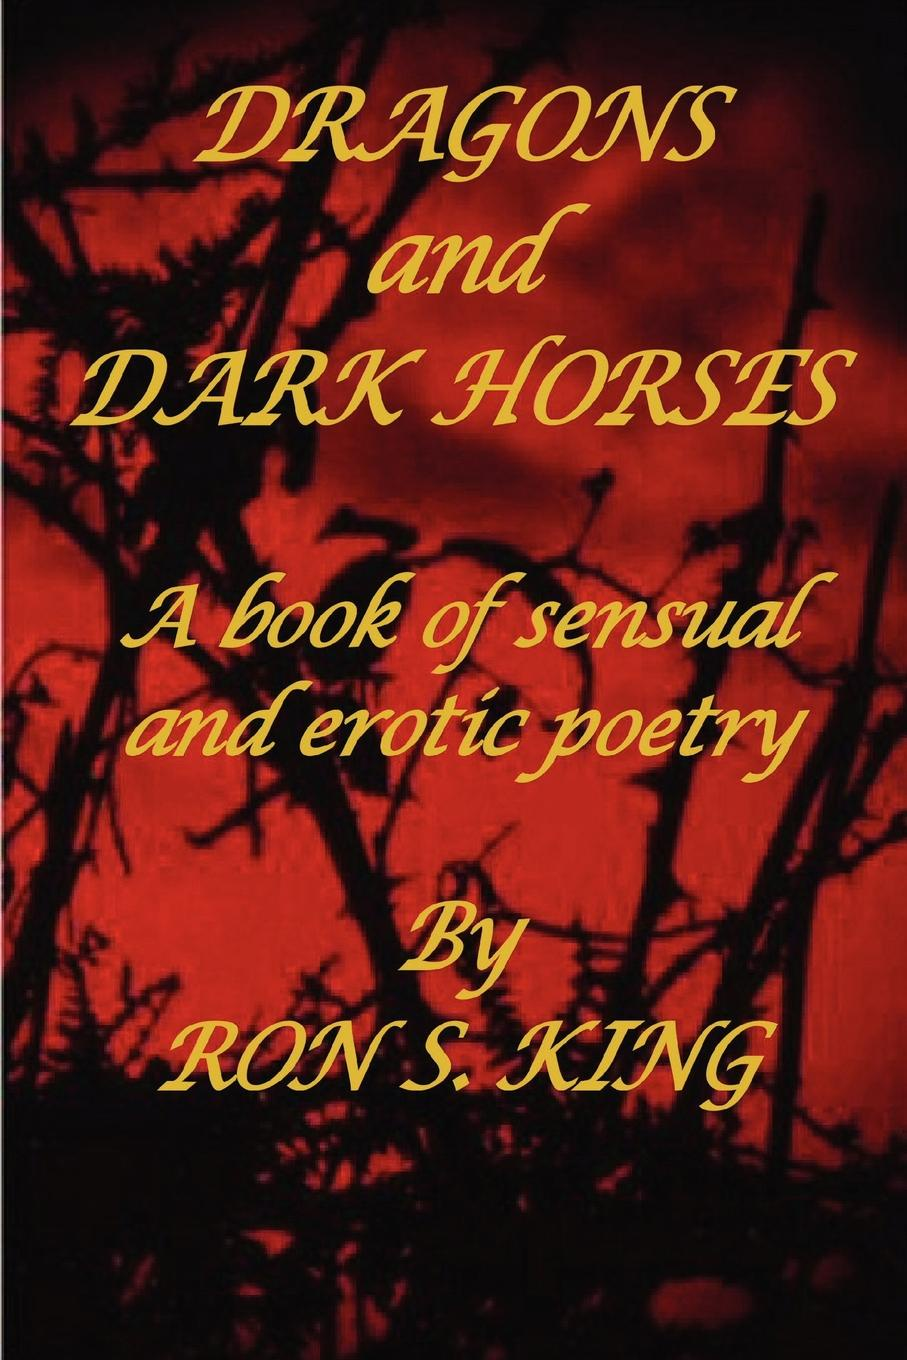 Фото - RON S. KING DRAGONS AND DARK HORSES джонс эрл ди эм экс dmx it s dark and hell is hot